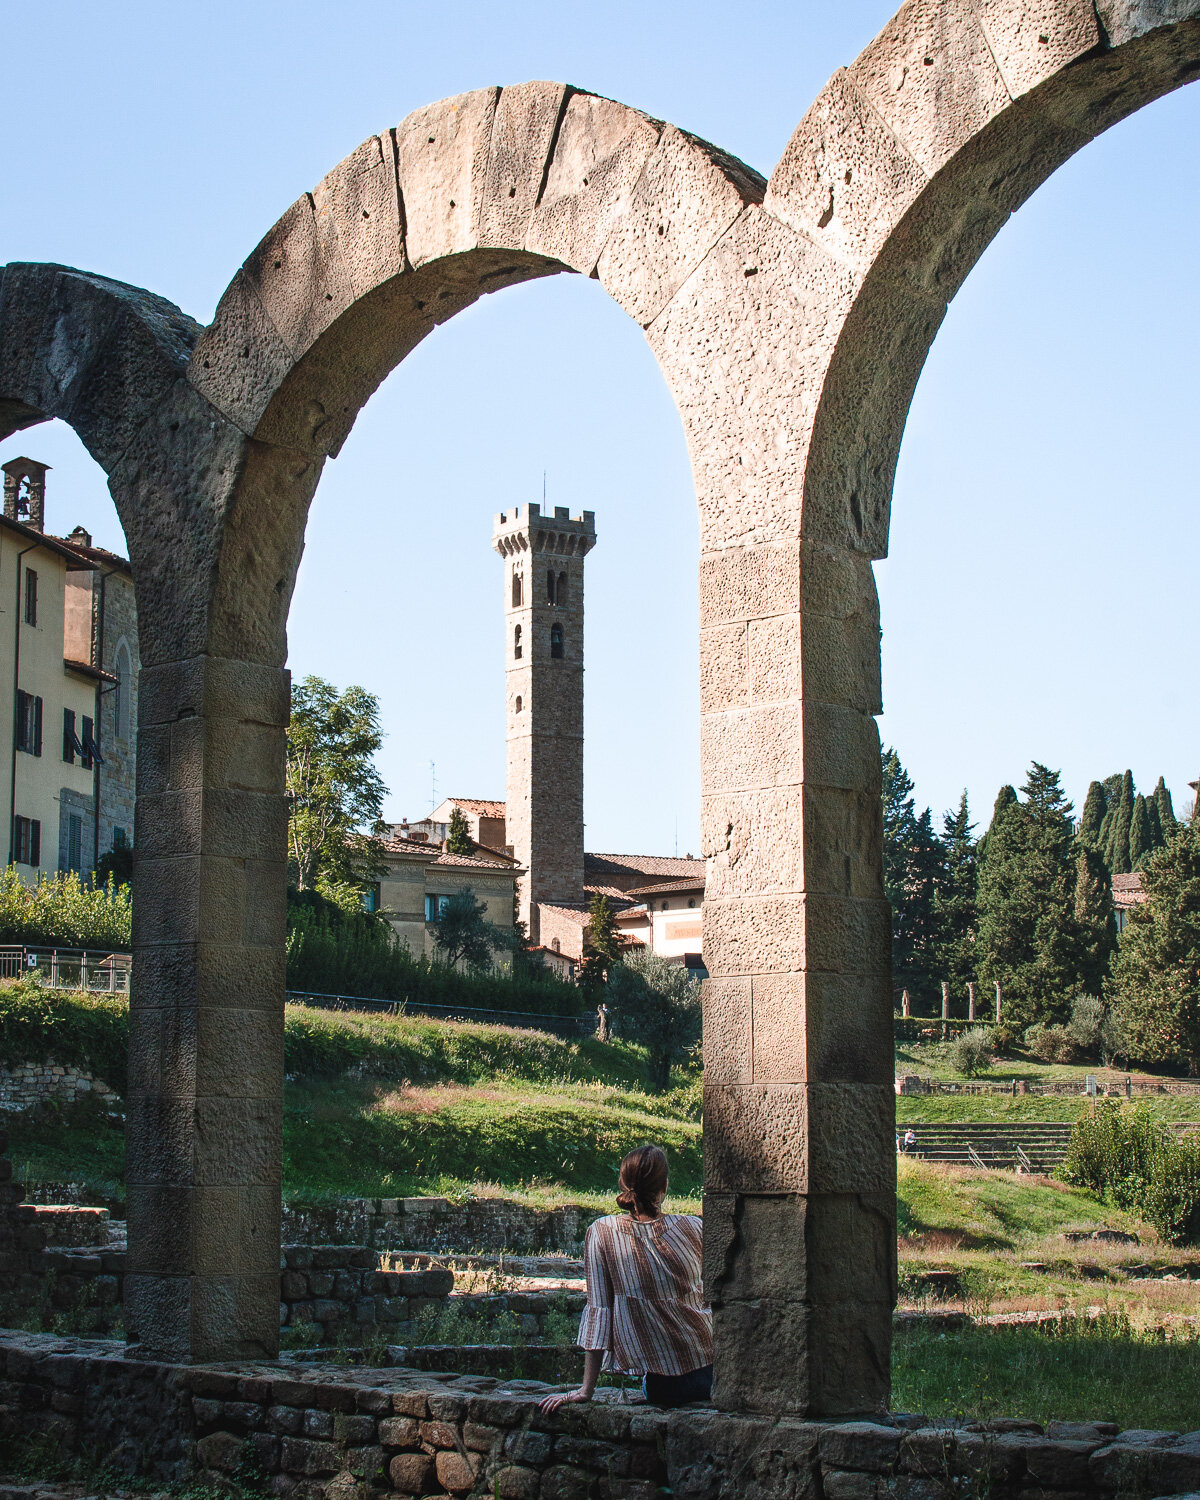 A travel guide for a Fiesole day trip